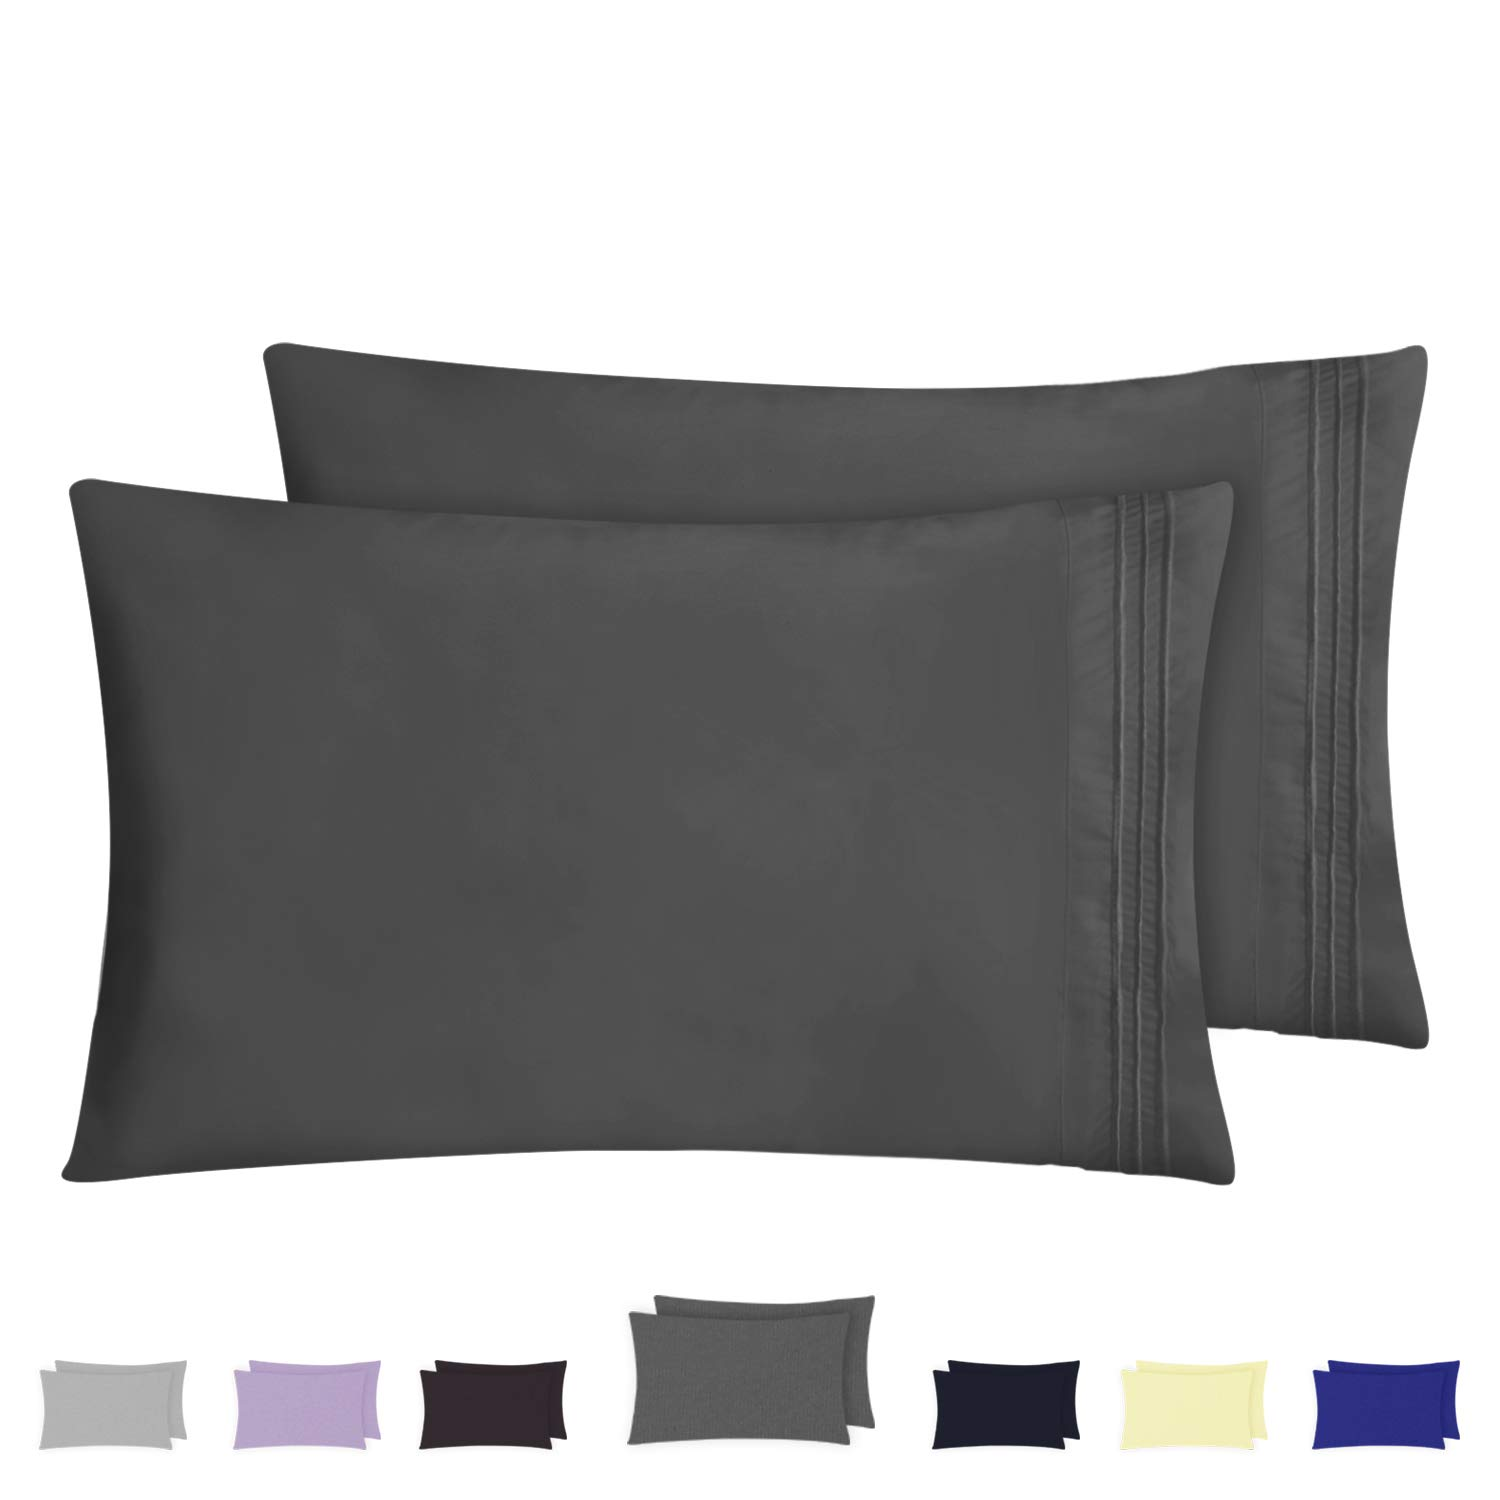 HOMEIDEAS Pillow Cases (Standard, Lavender) - 100% Brushed Microfiber, Ultra Soft - Envelope Closure End - Wrinkle, Fade, Stain Resistant - Set of 2